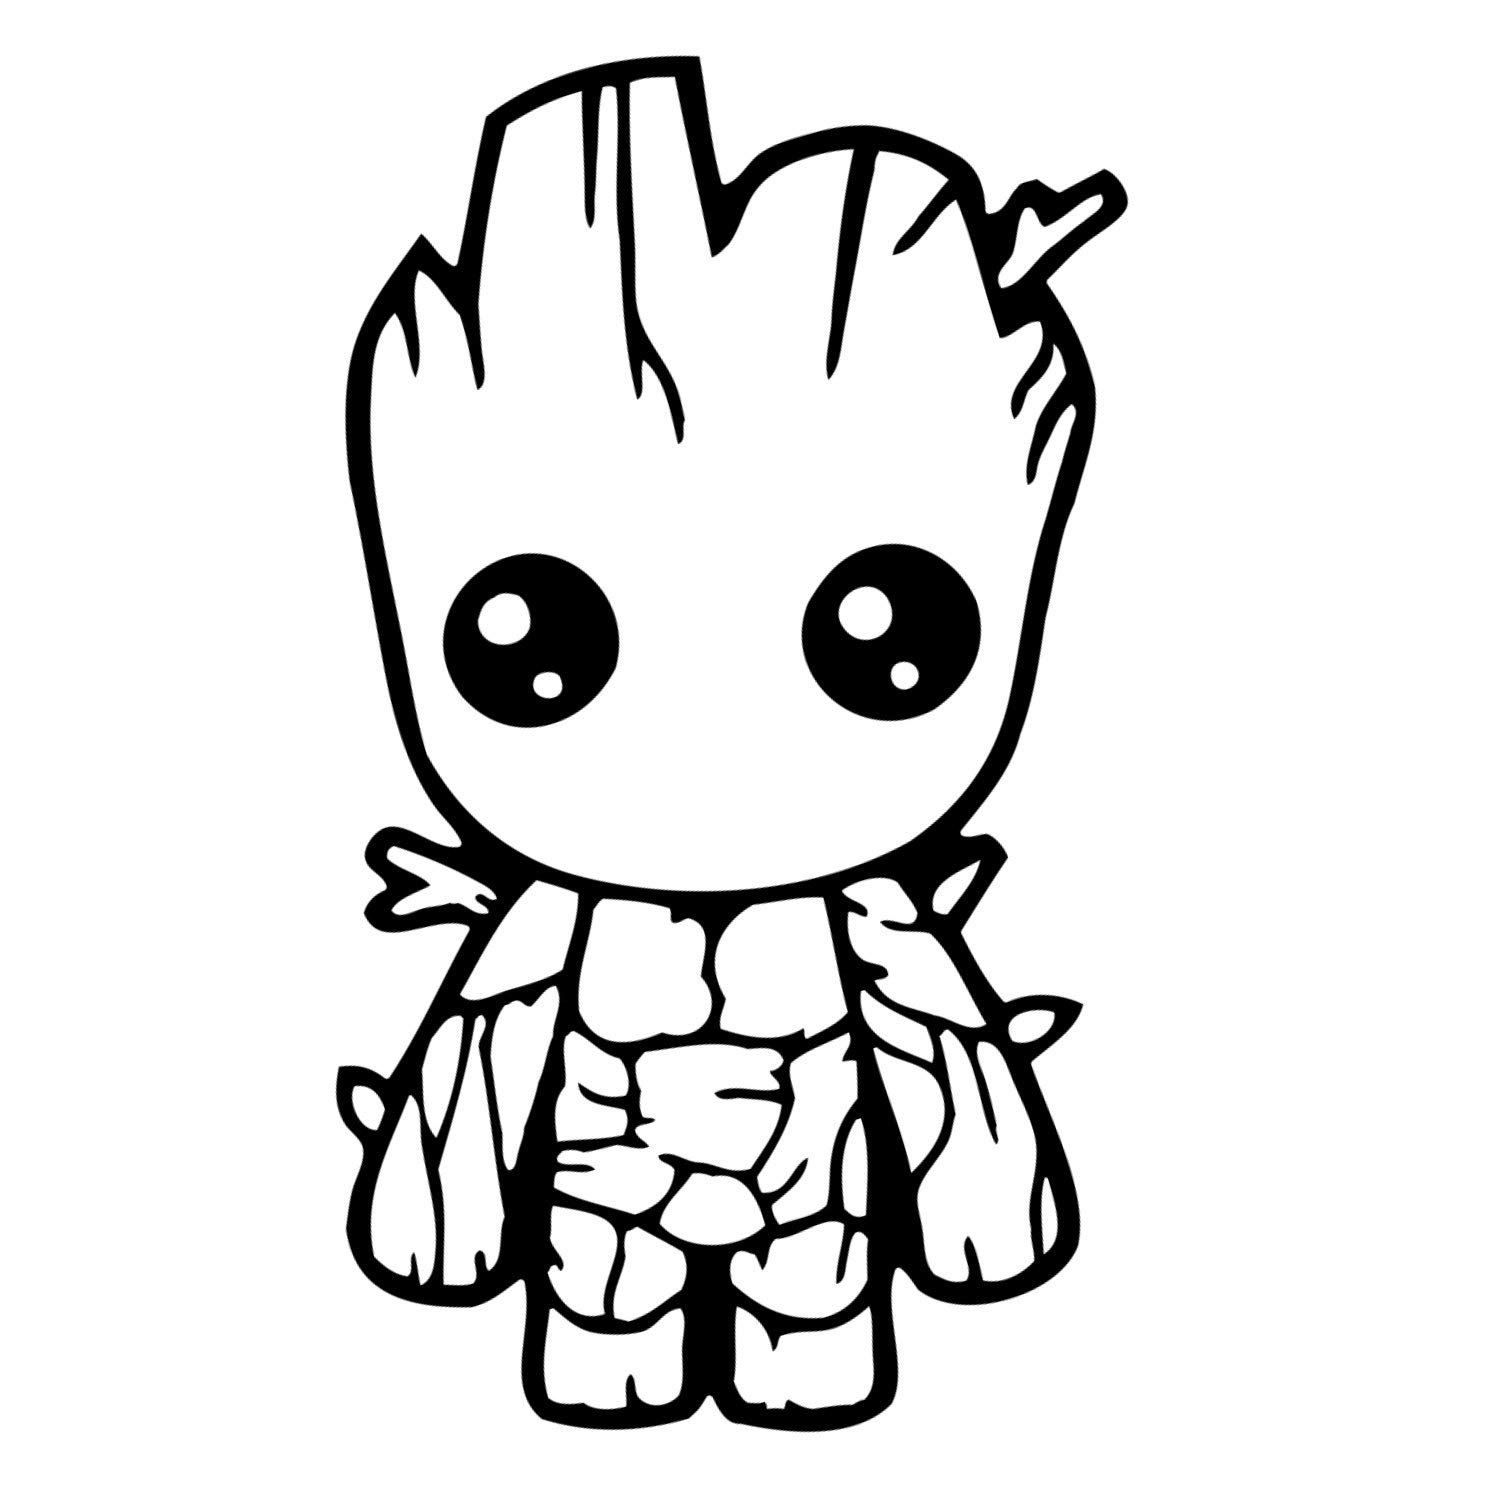 Baby Groot Decal Avengers coloring pages, Avengers